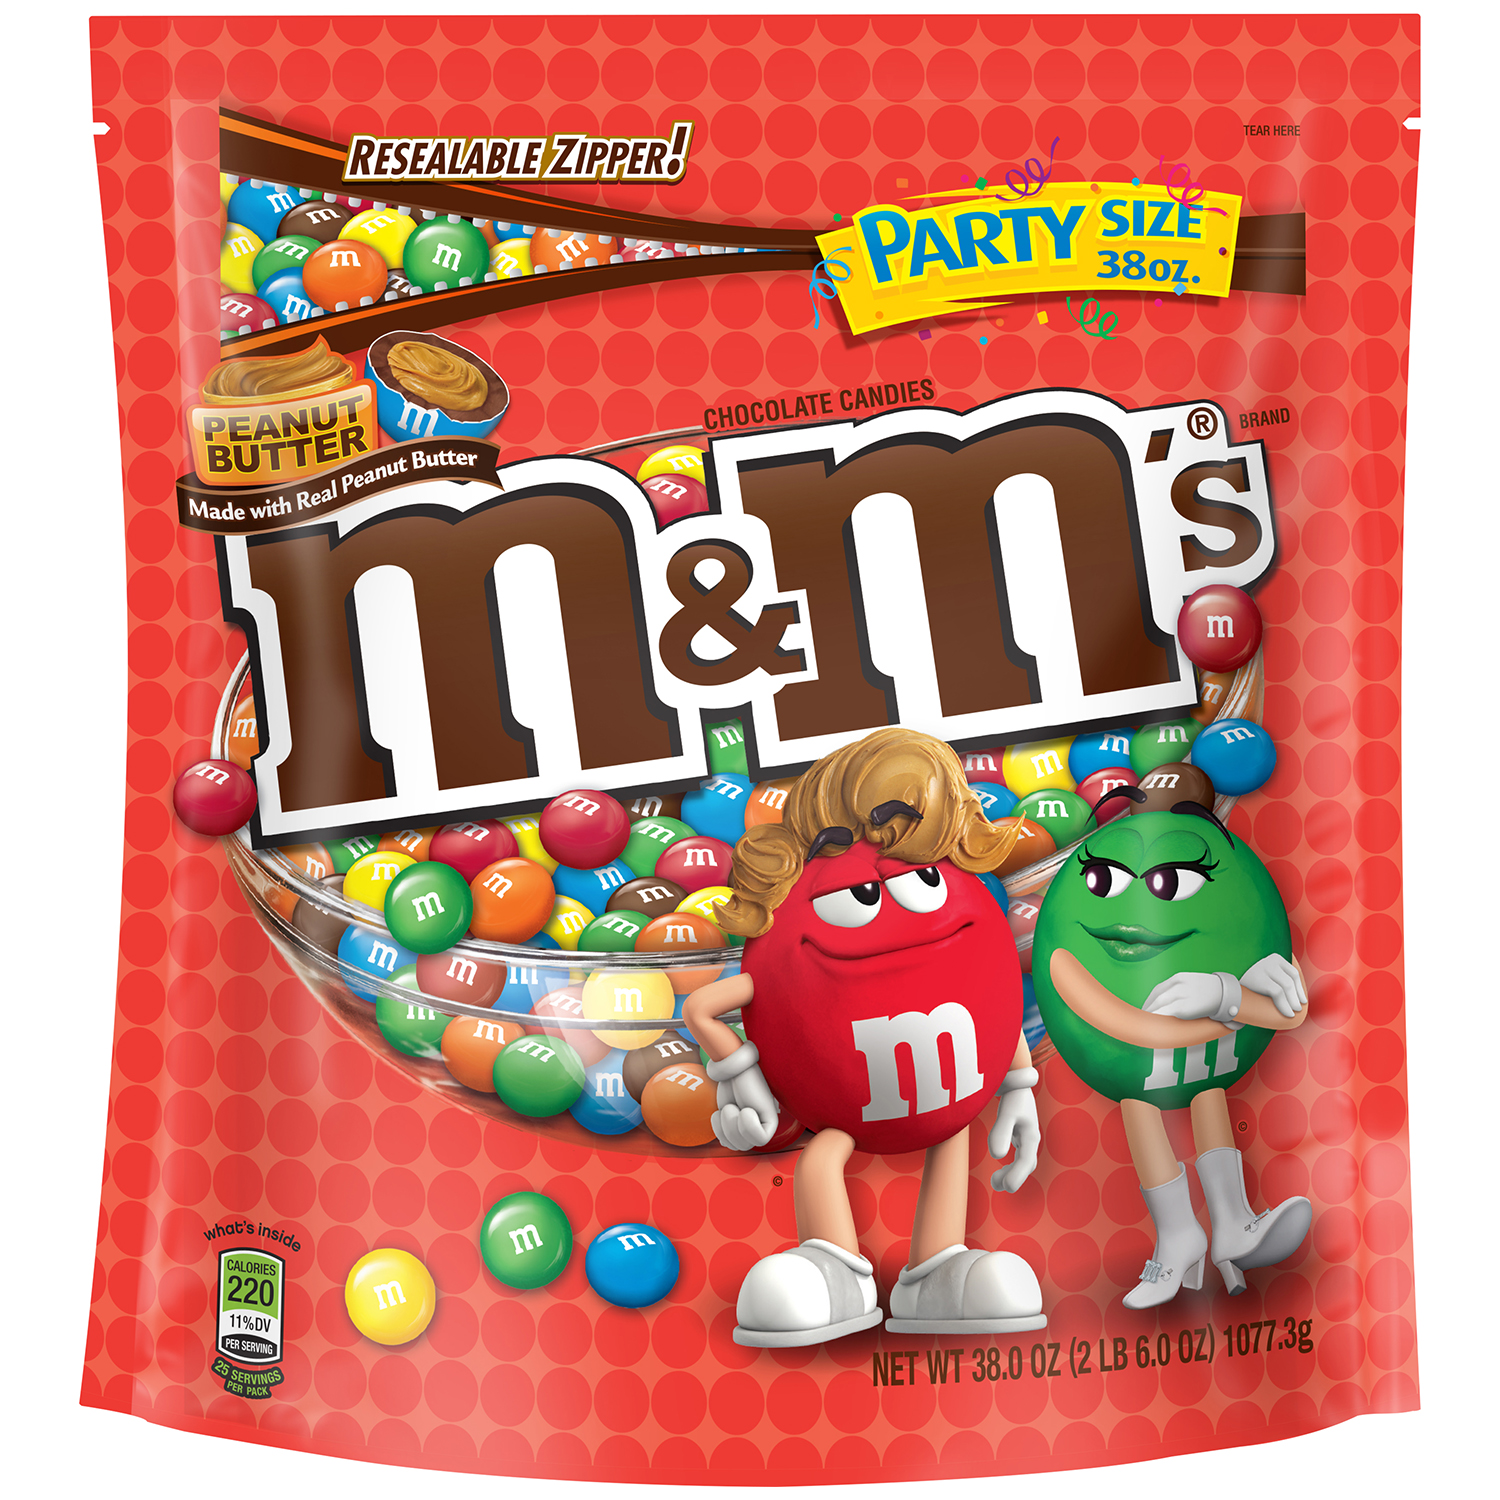 M&M'S Peanut Butter Chocolate Candy Party Size Bag, 38 oz